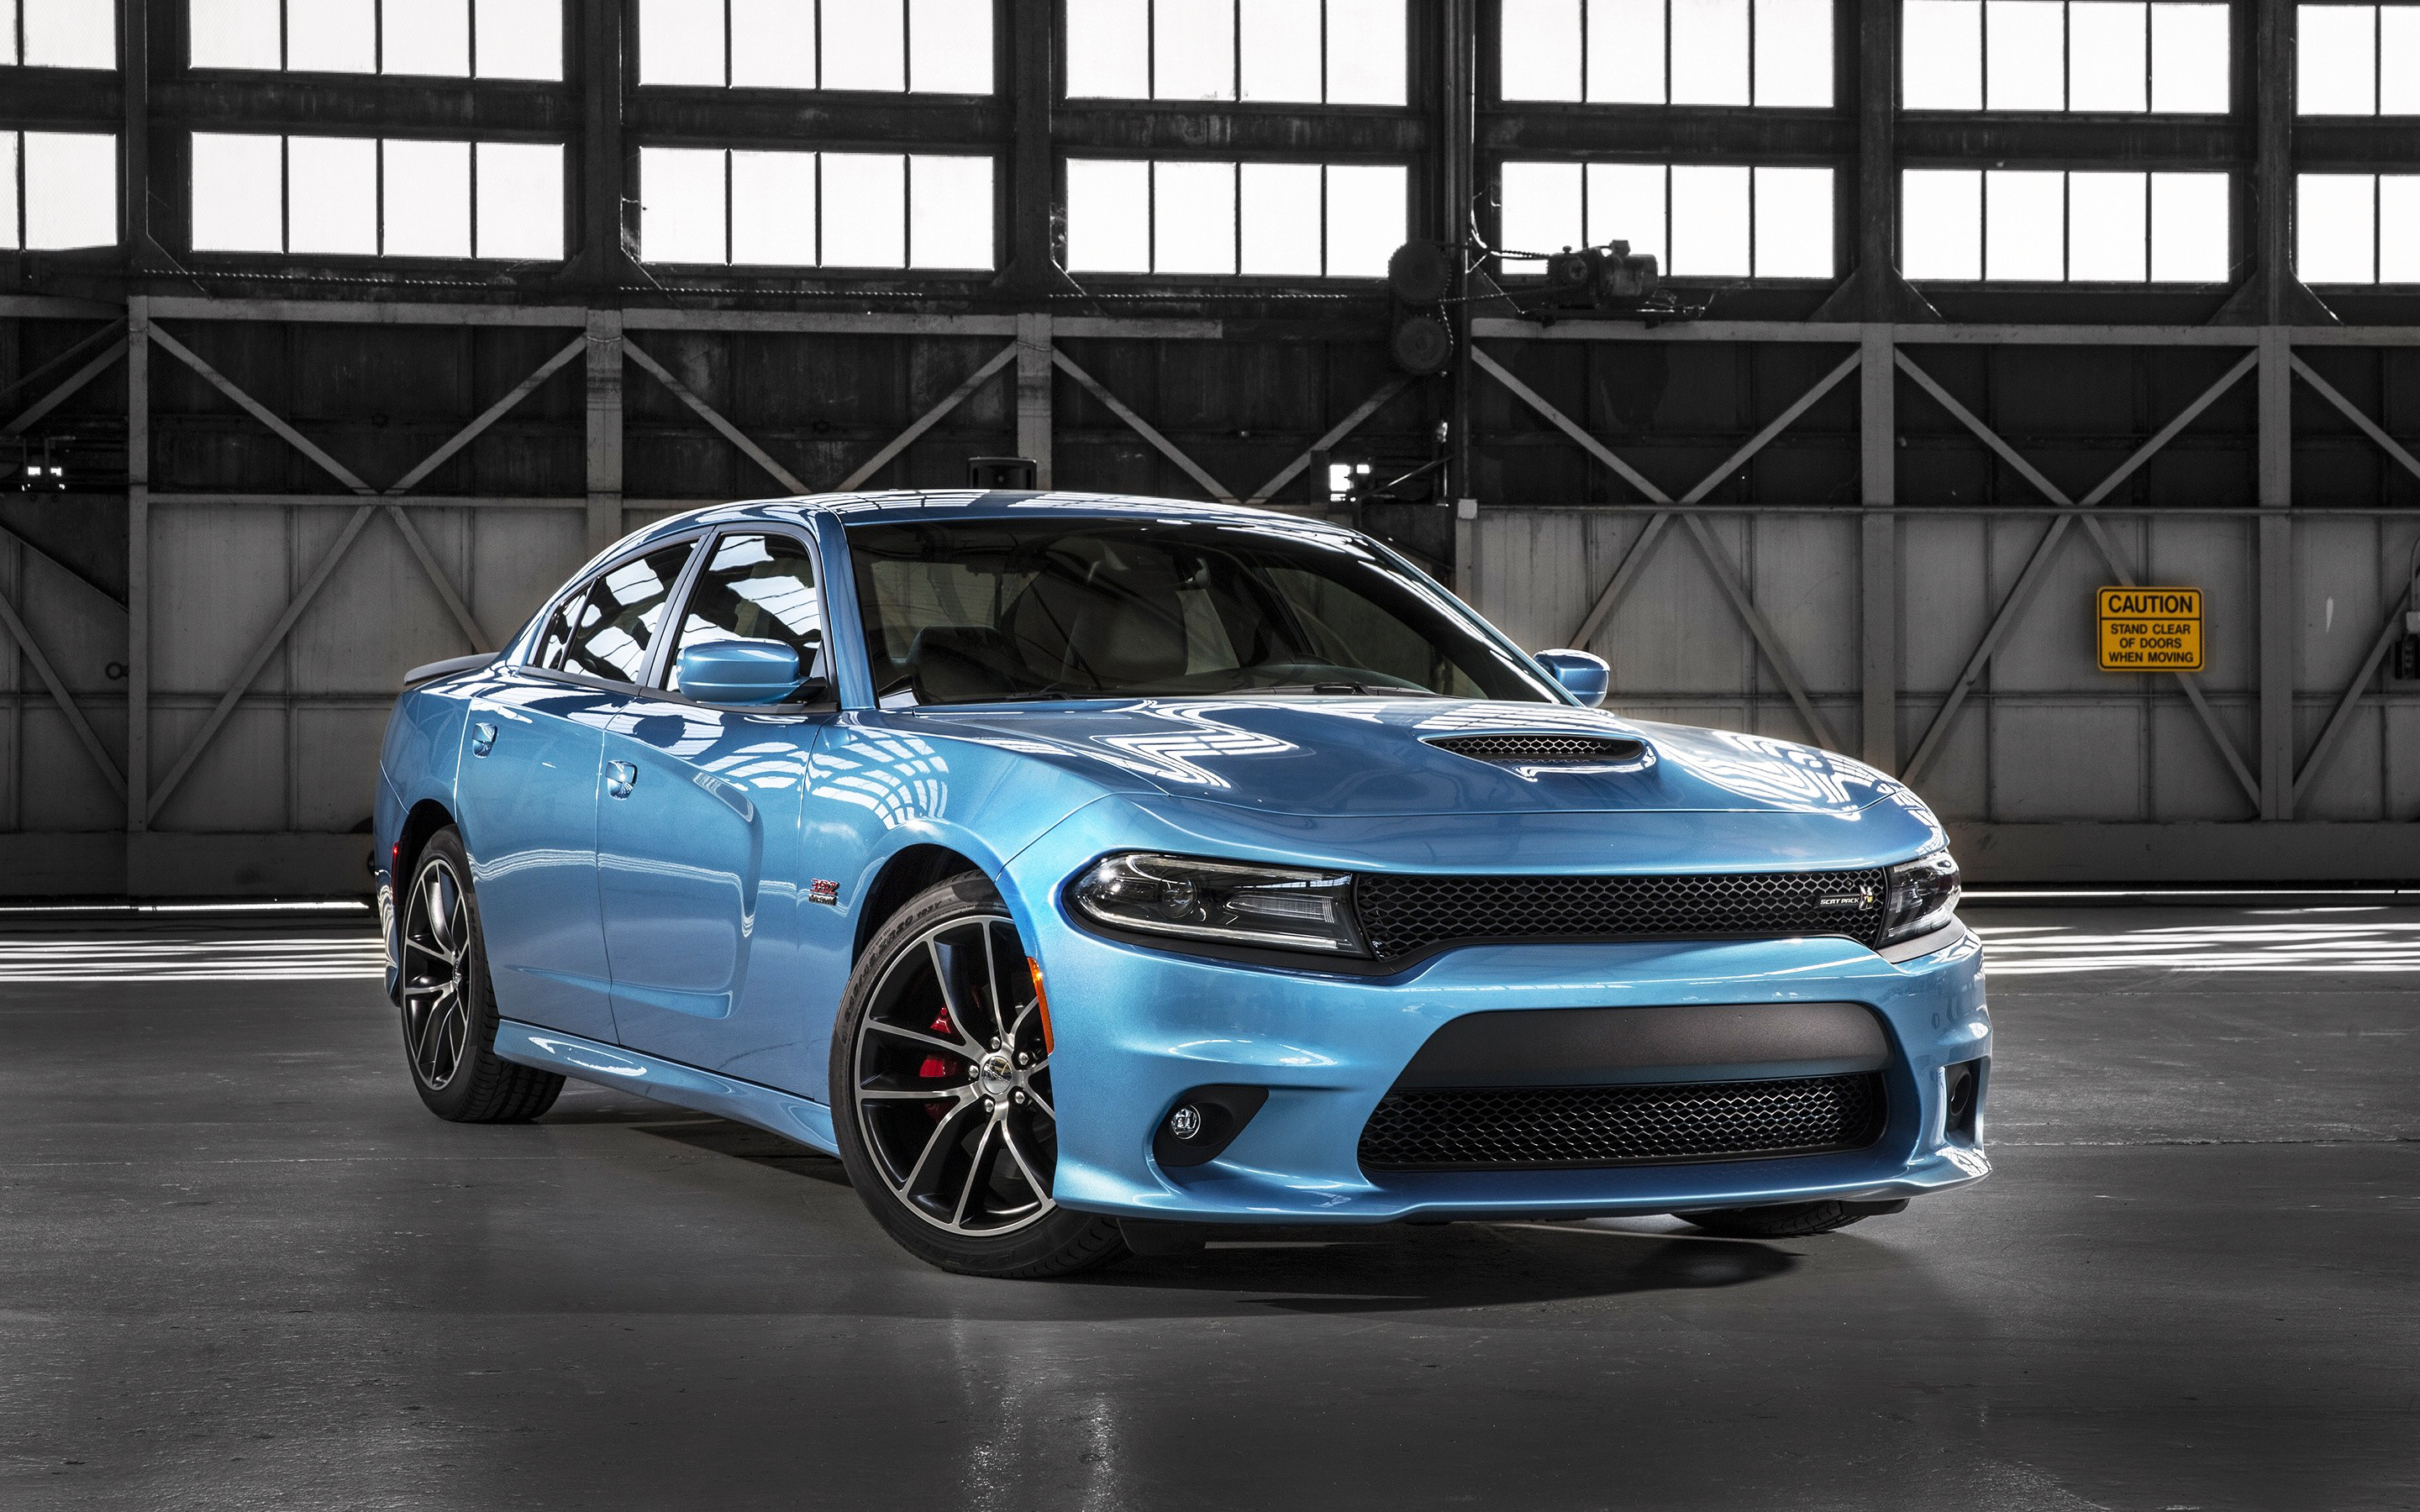 Dodge Charger RT Scat Pack Wallpapers   HD Wallpapers